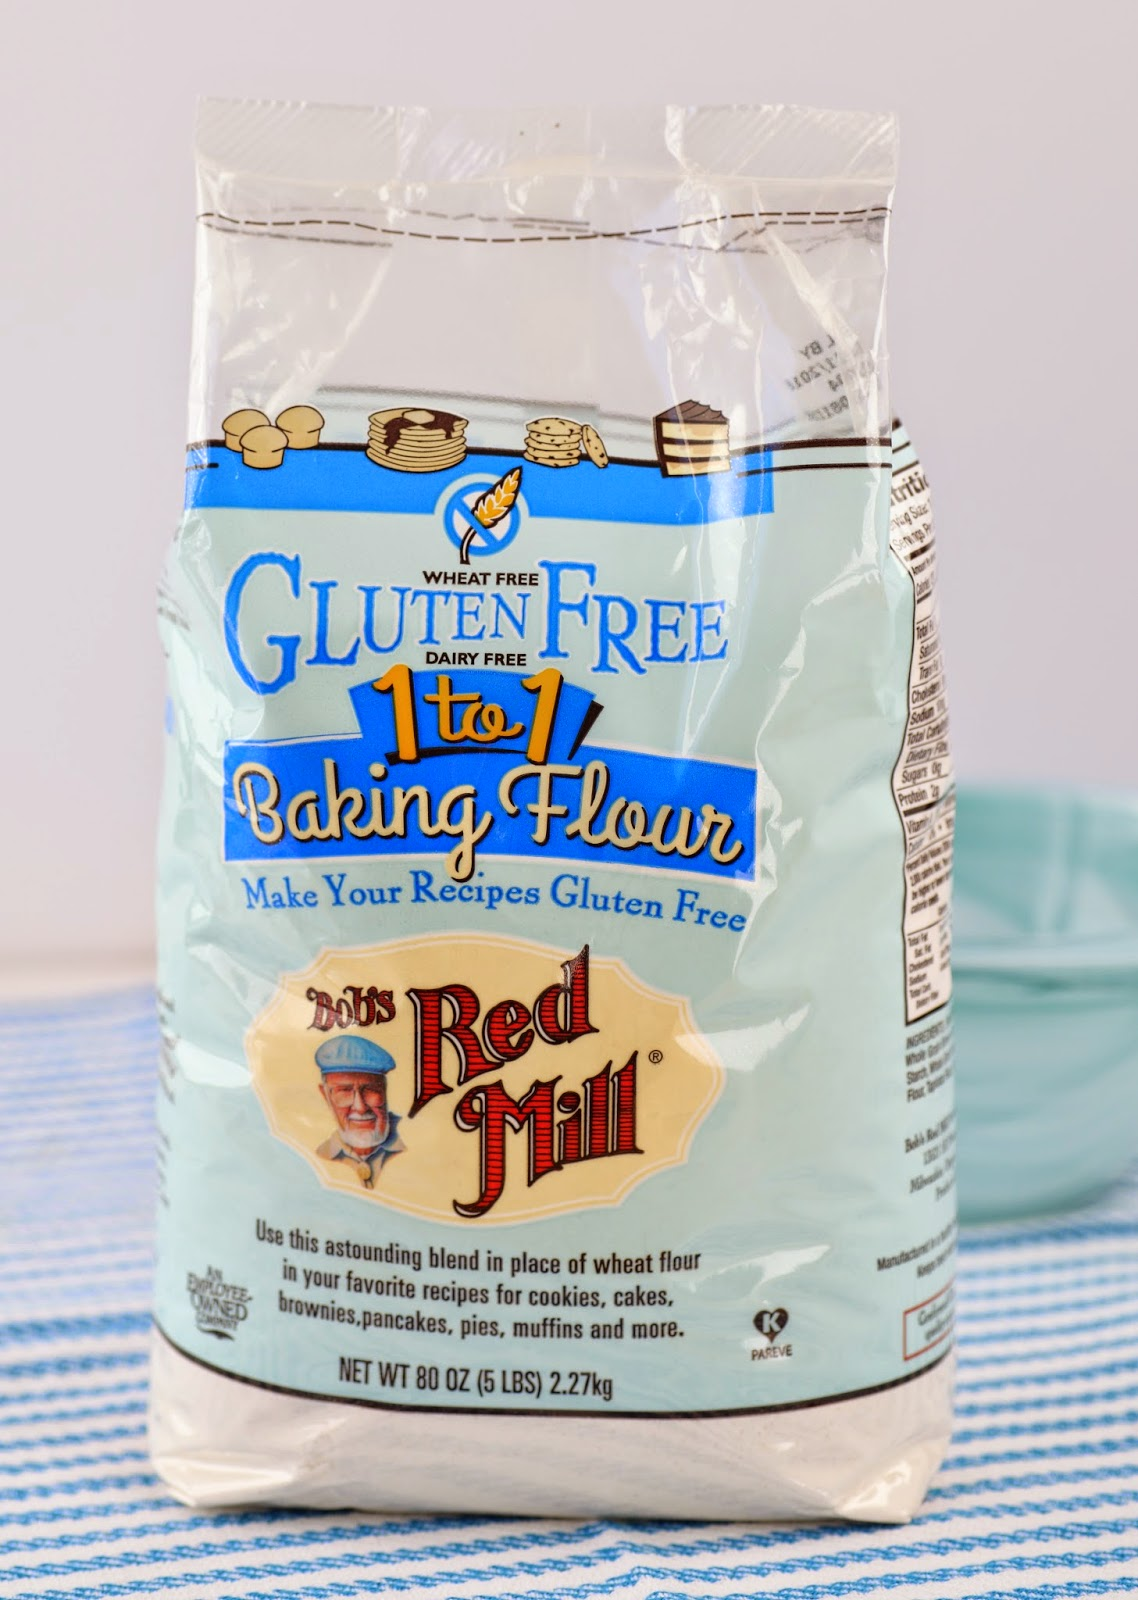 Learning to Eat Allergy-Free: Bob's Red Mill Gluten-Free 1